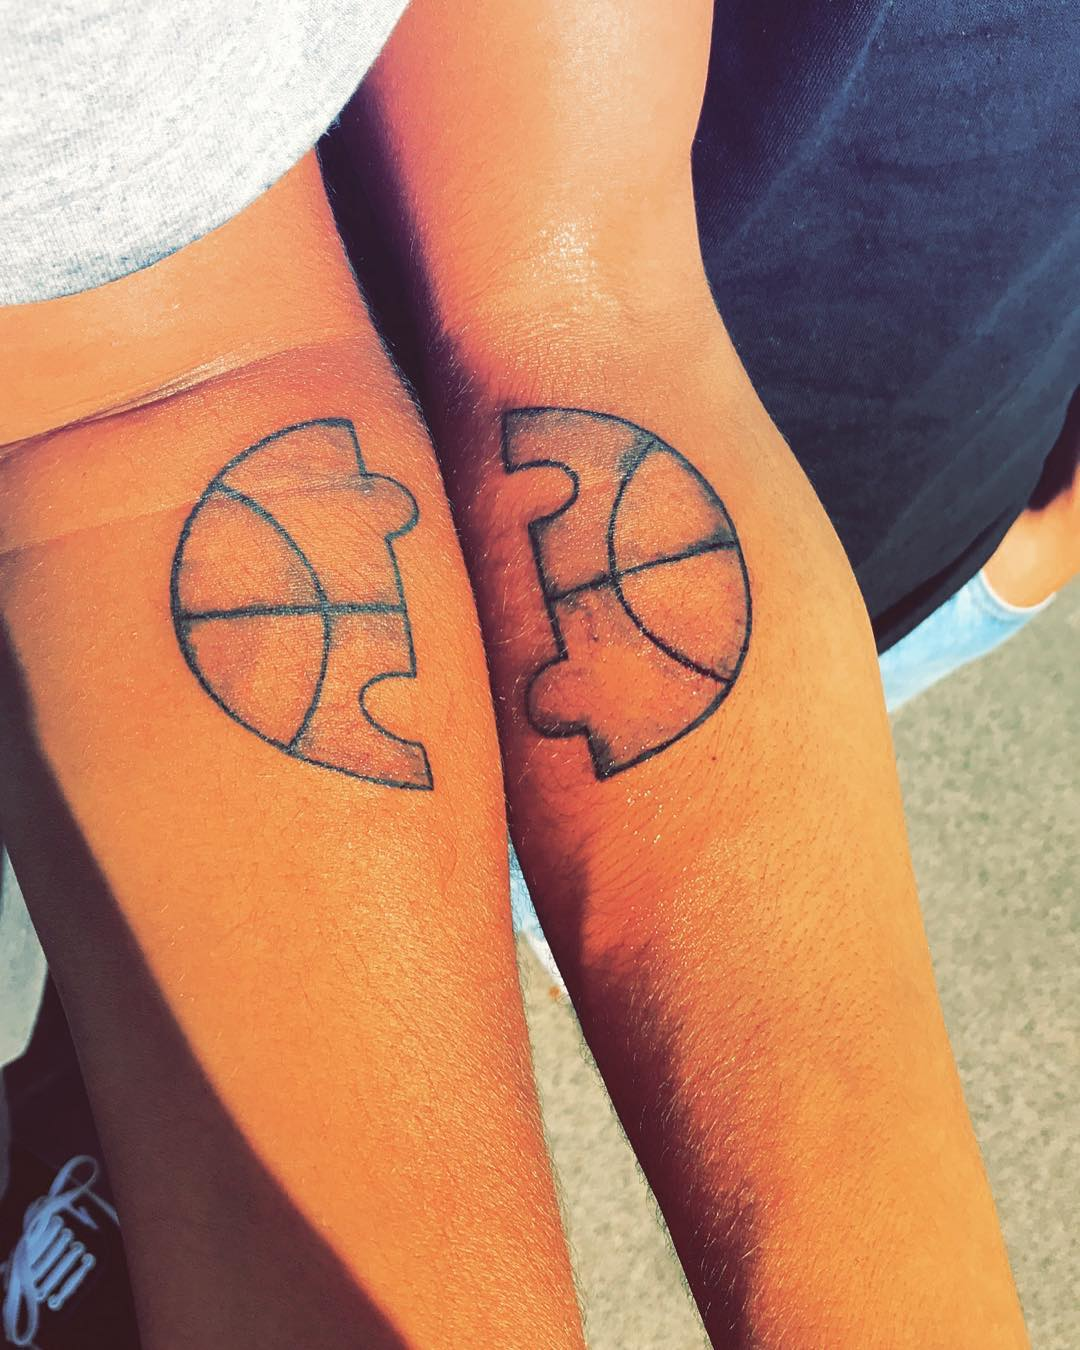 55 Super Cute Sibling Tattoos To Relive The Undying Bond Every Moment